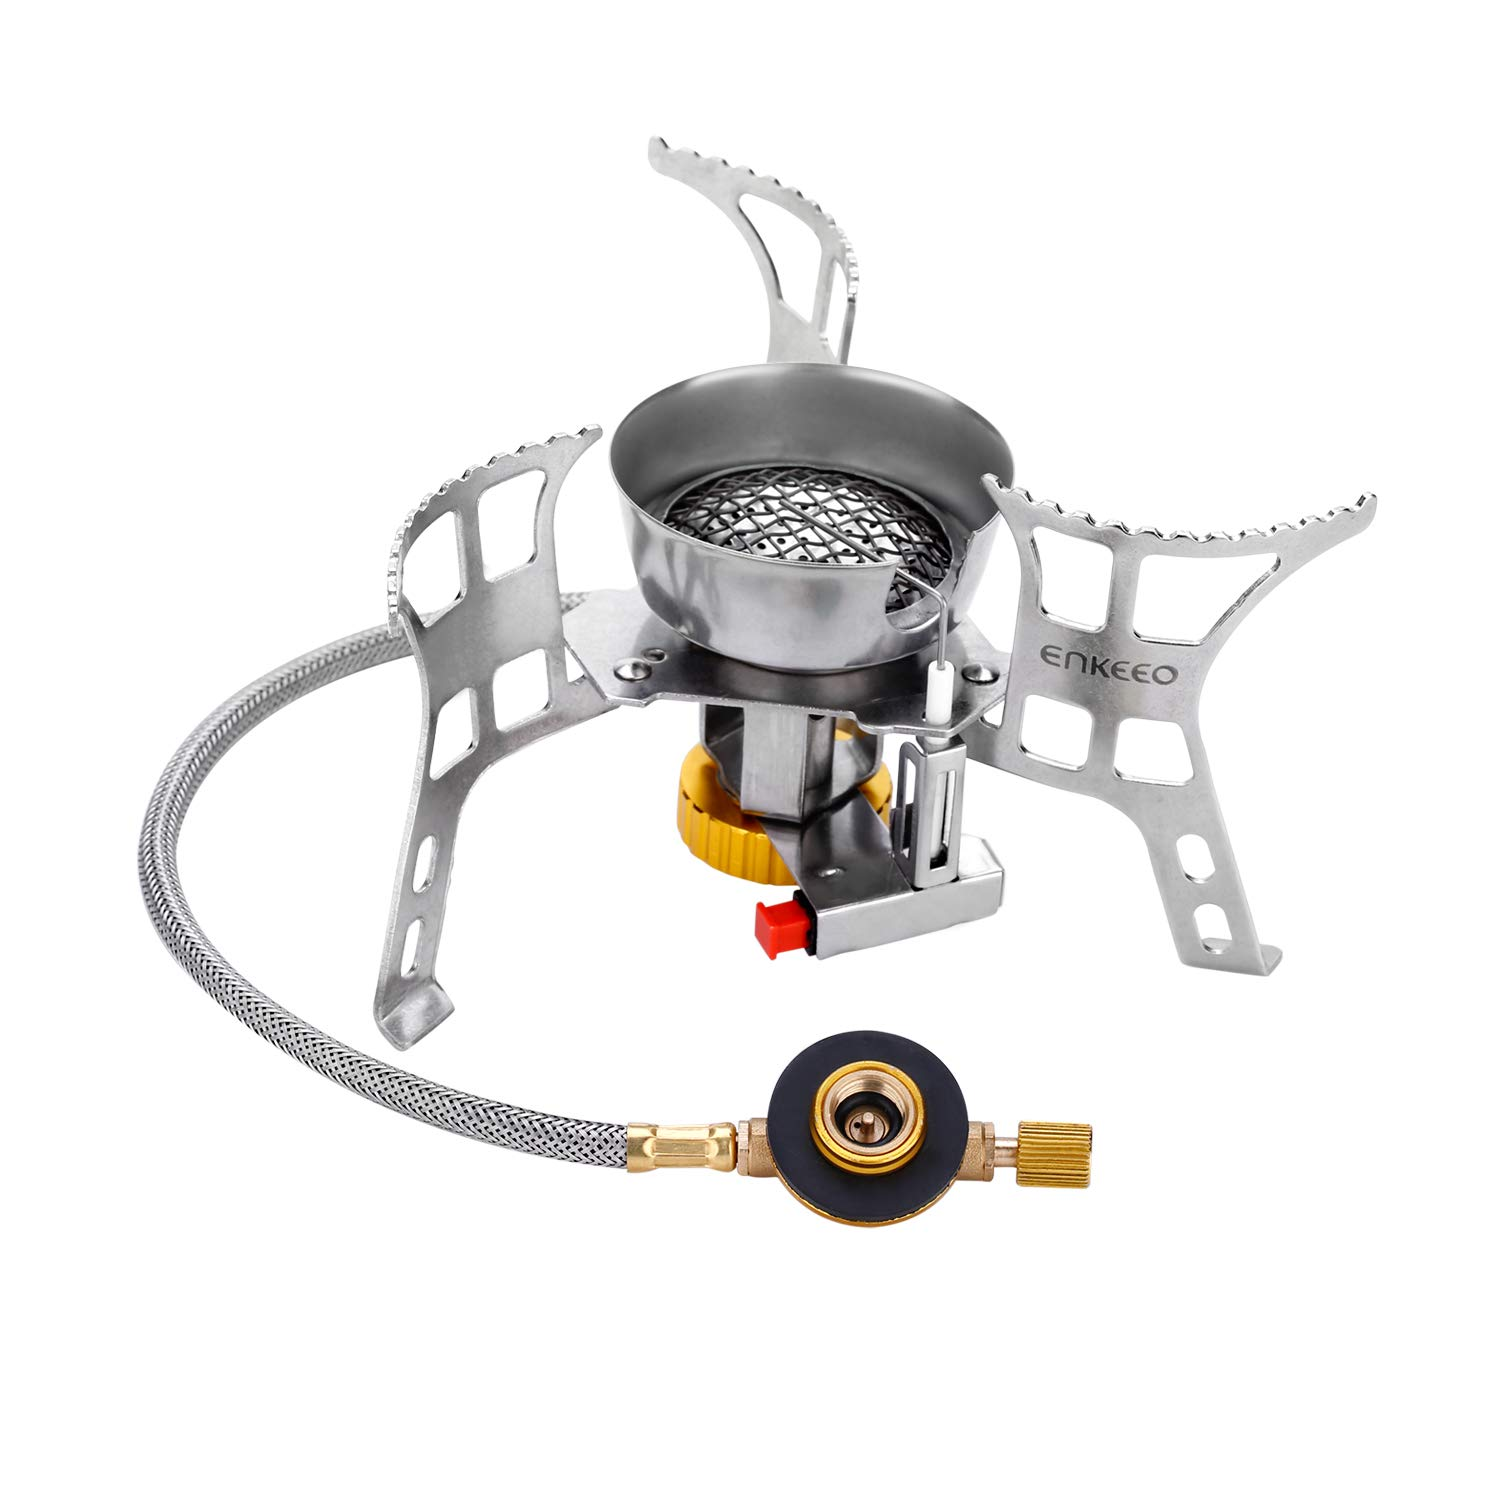 Amazon.com   ENKEEO 3000W Portable Camping Stove Foldable Backpack Gas  Cooker with Windscreen a96c46383050